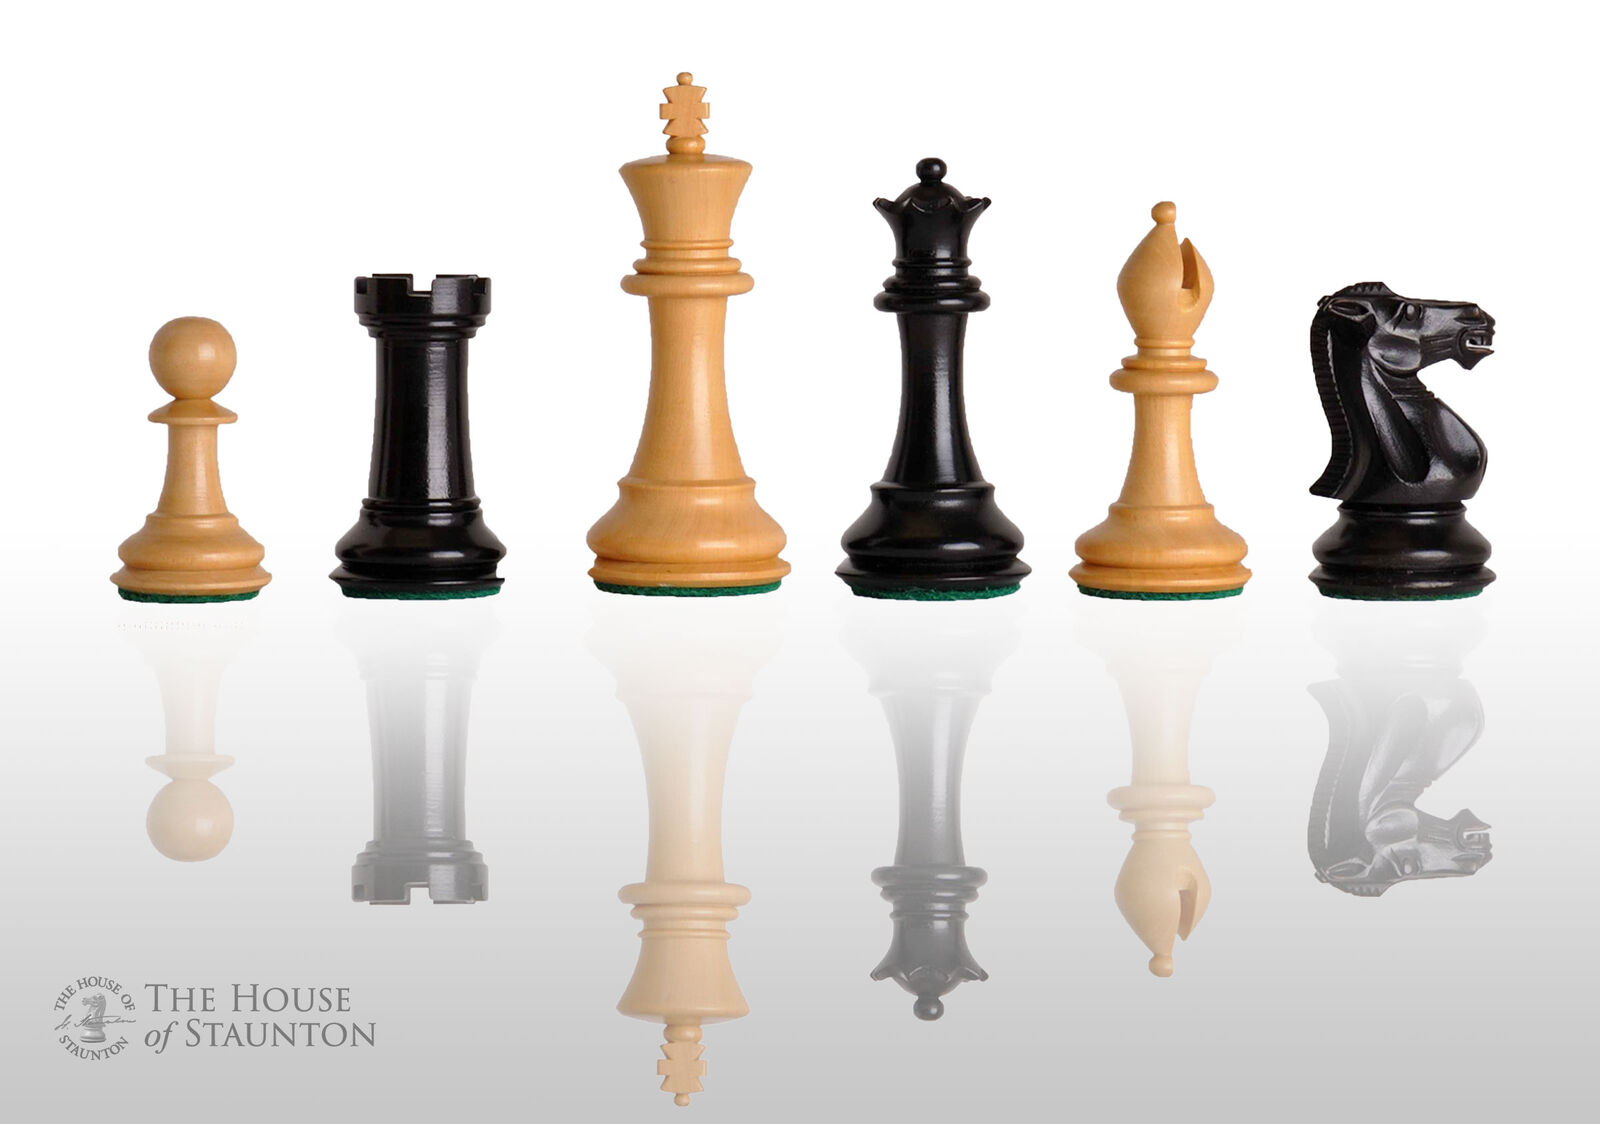 The Congress Chess Set - Pieces Only - 3.75  King - Ebonized Boxwood